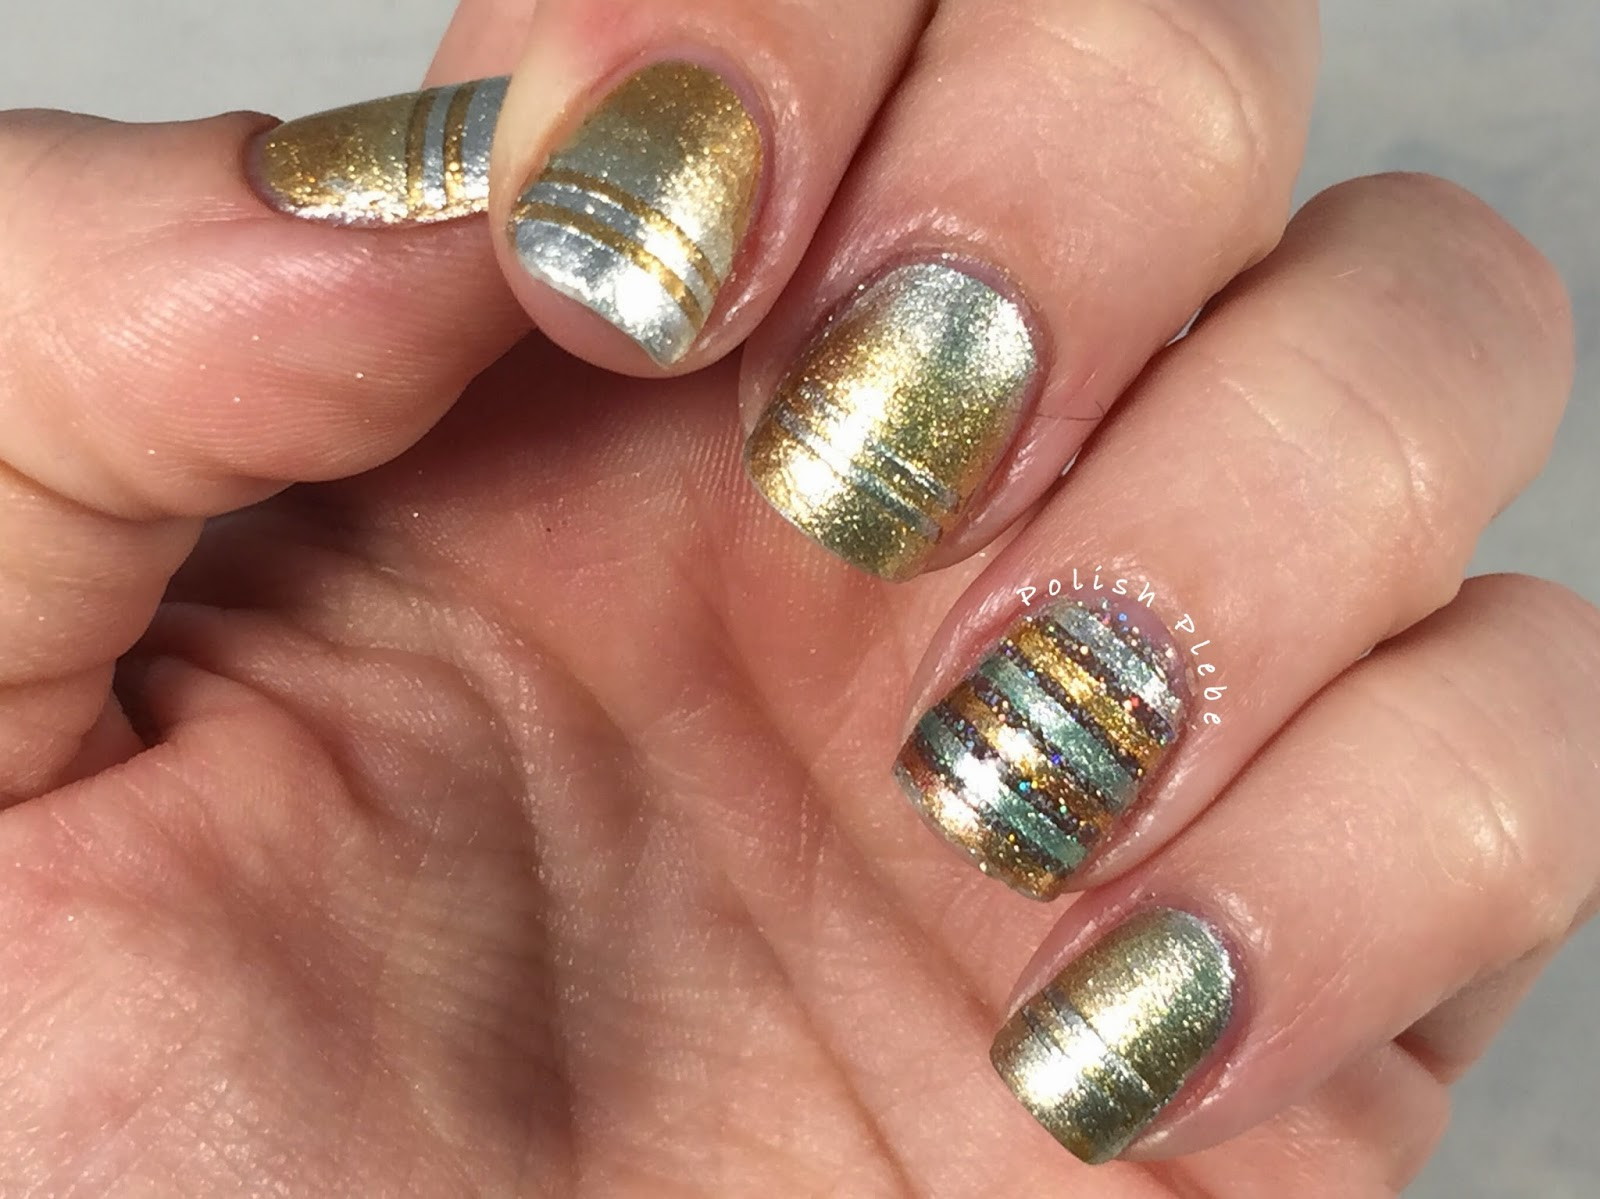 Nails Art: Silver and Gold Nail Art